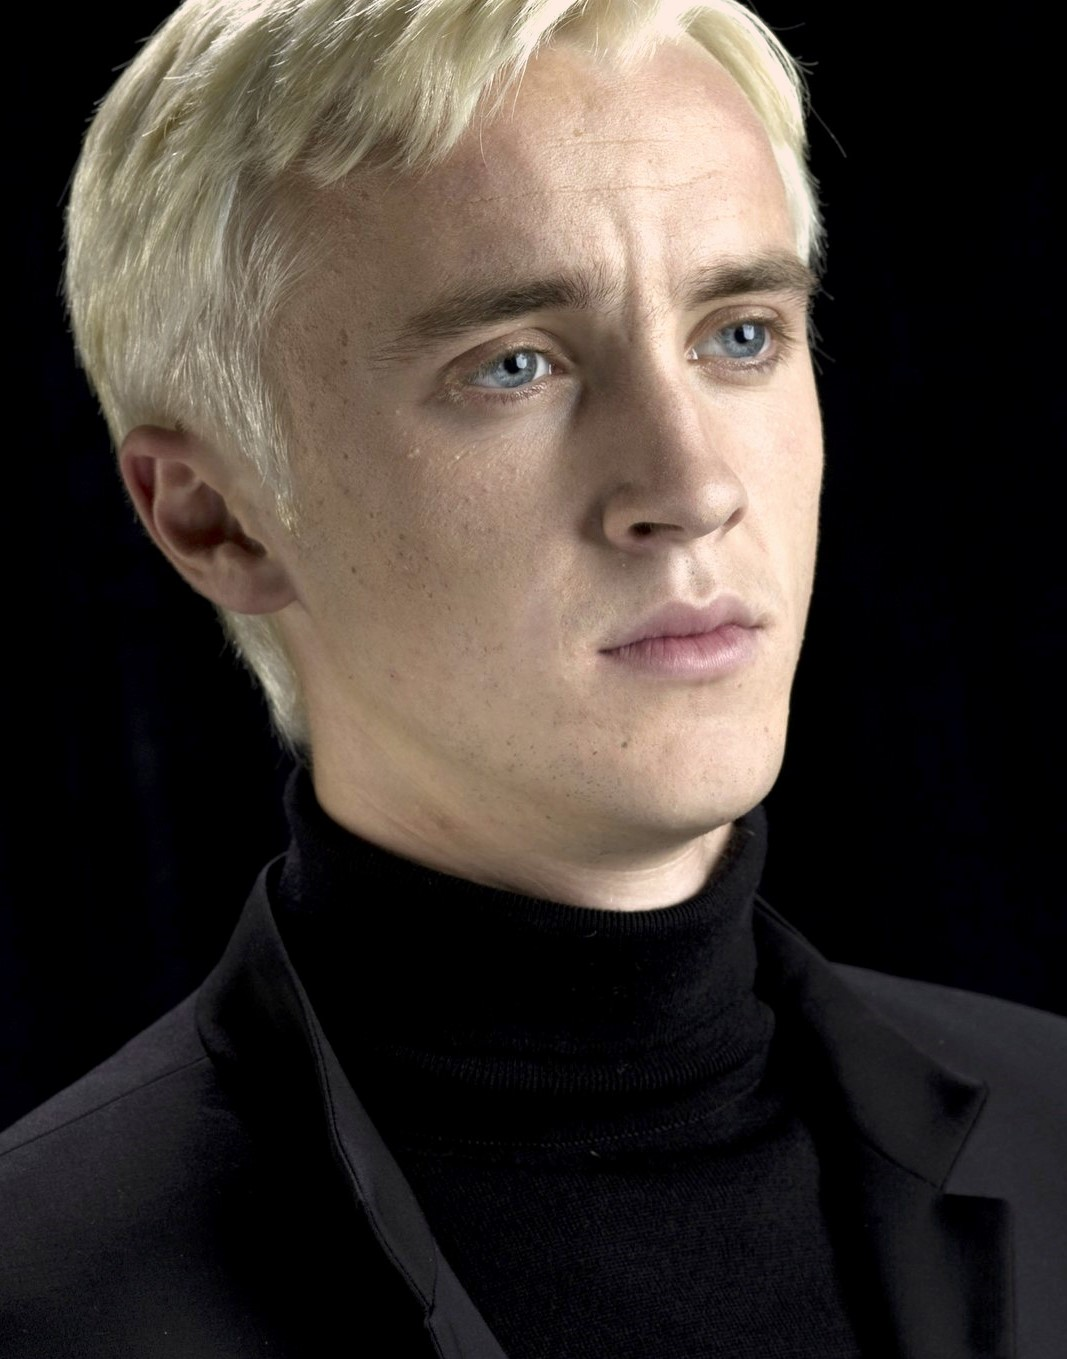 draco lucius malfoy biographical information born 5 june 1 1980 blood